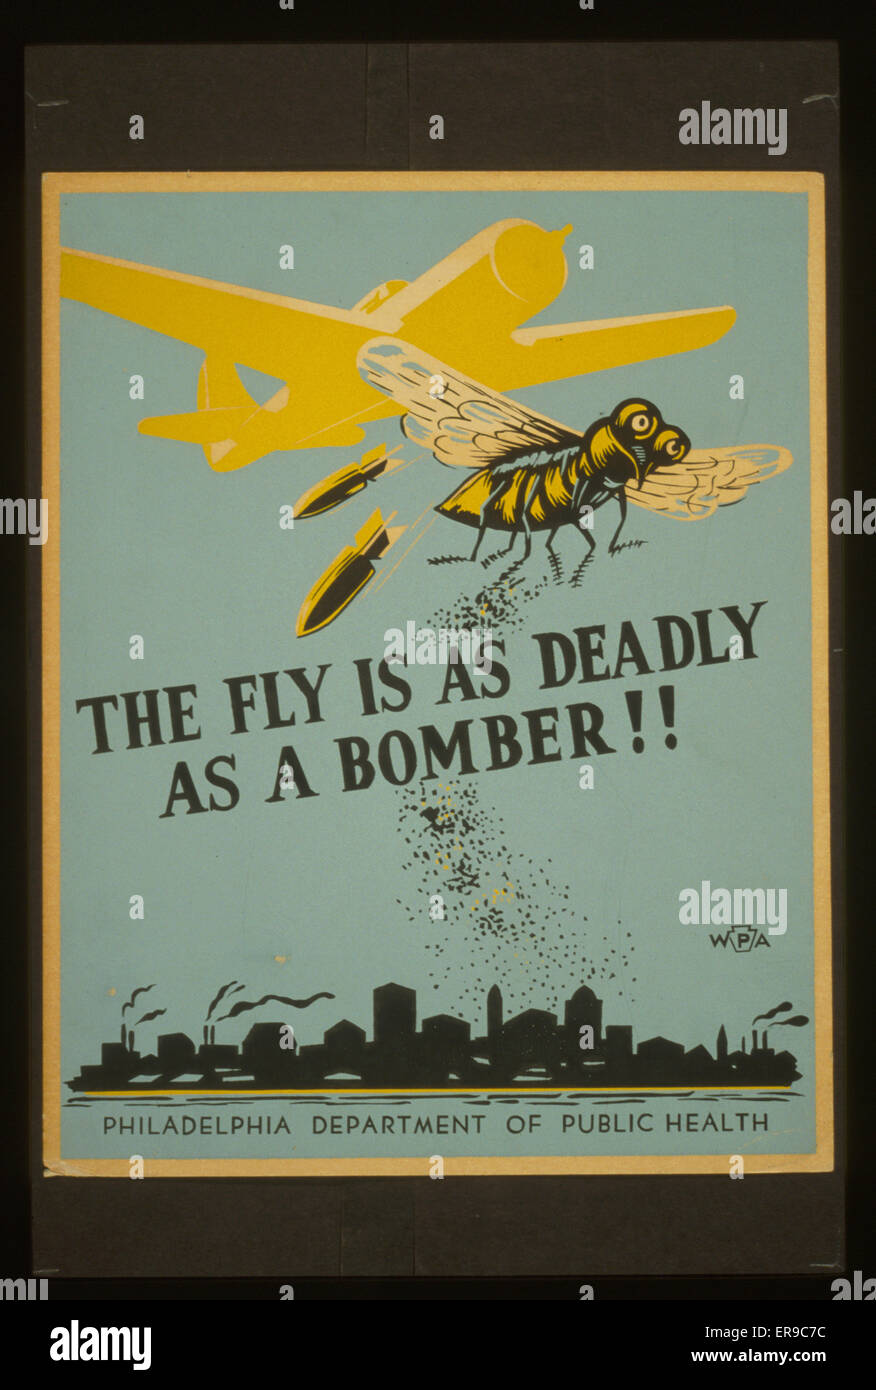 The fly is as deadly as a bomber!!. Poster for Philadelphia Department of Health warning of potential health risks - Stock Image